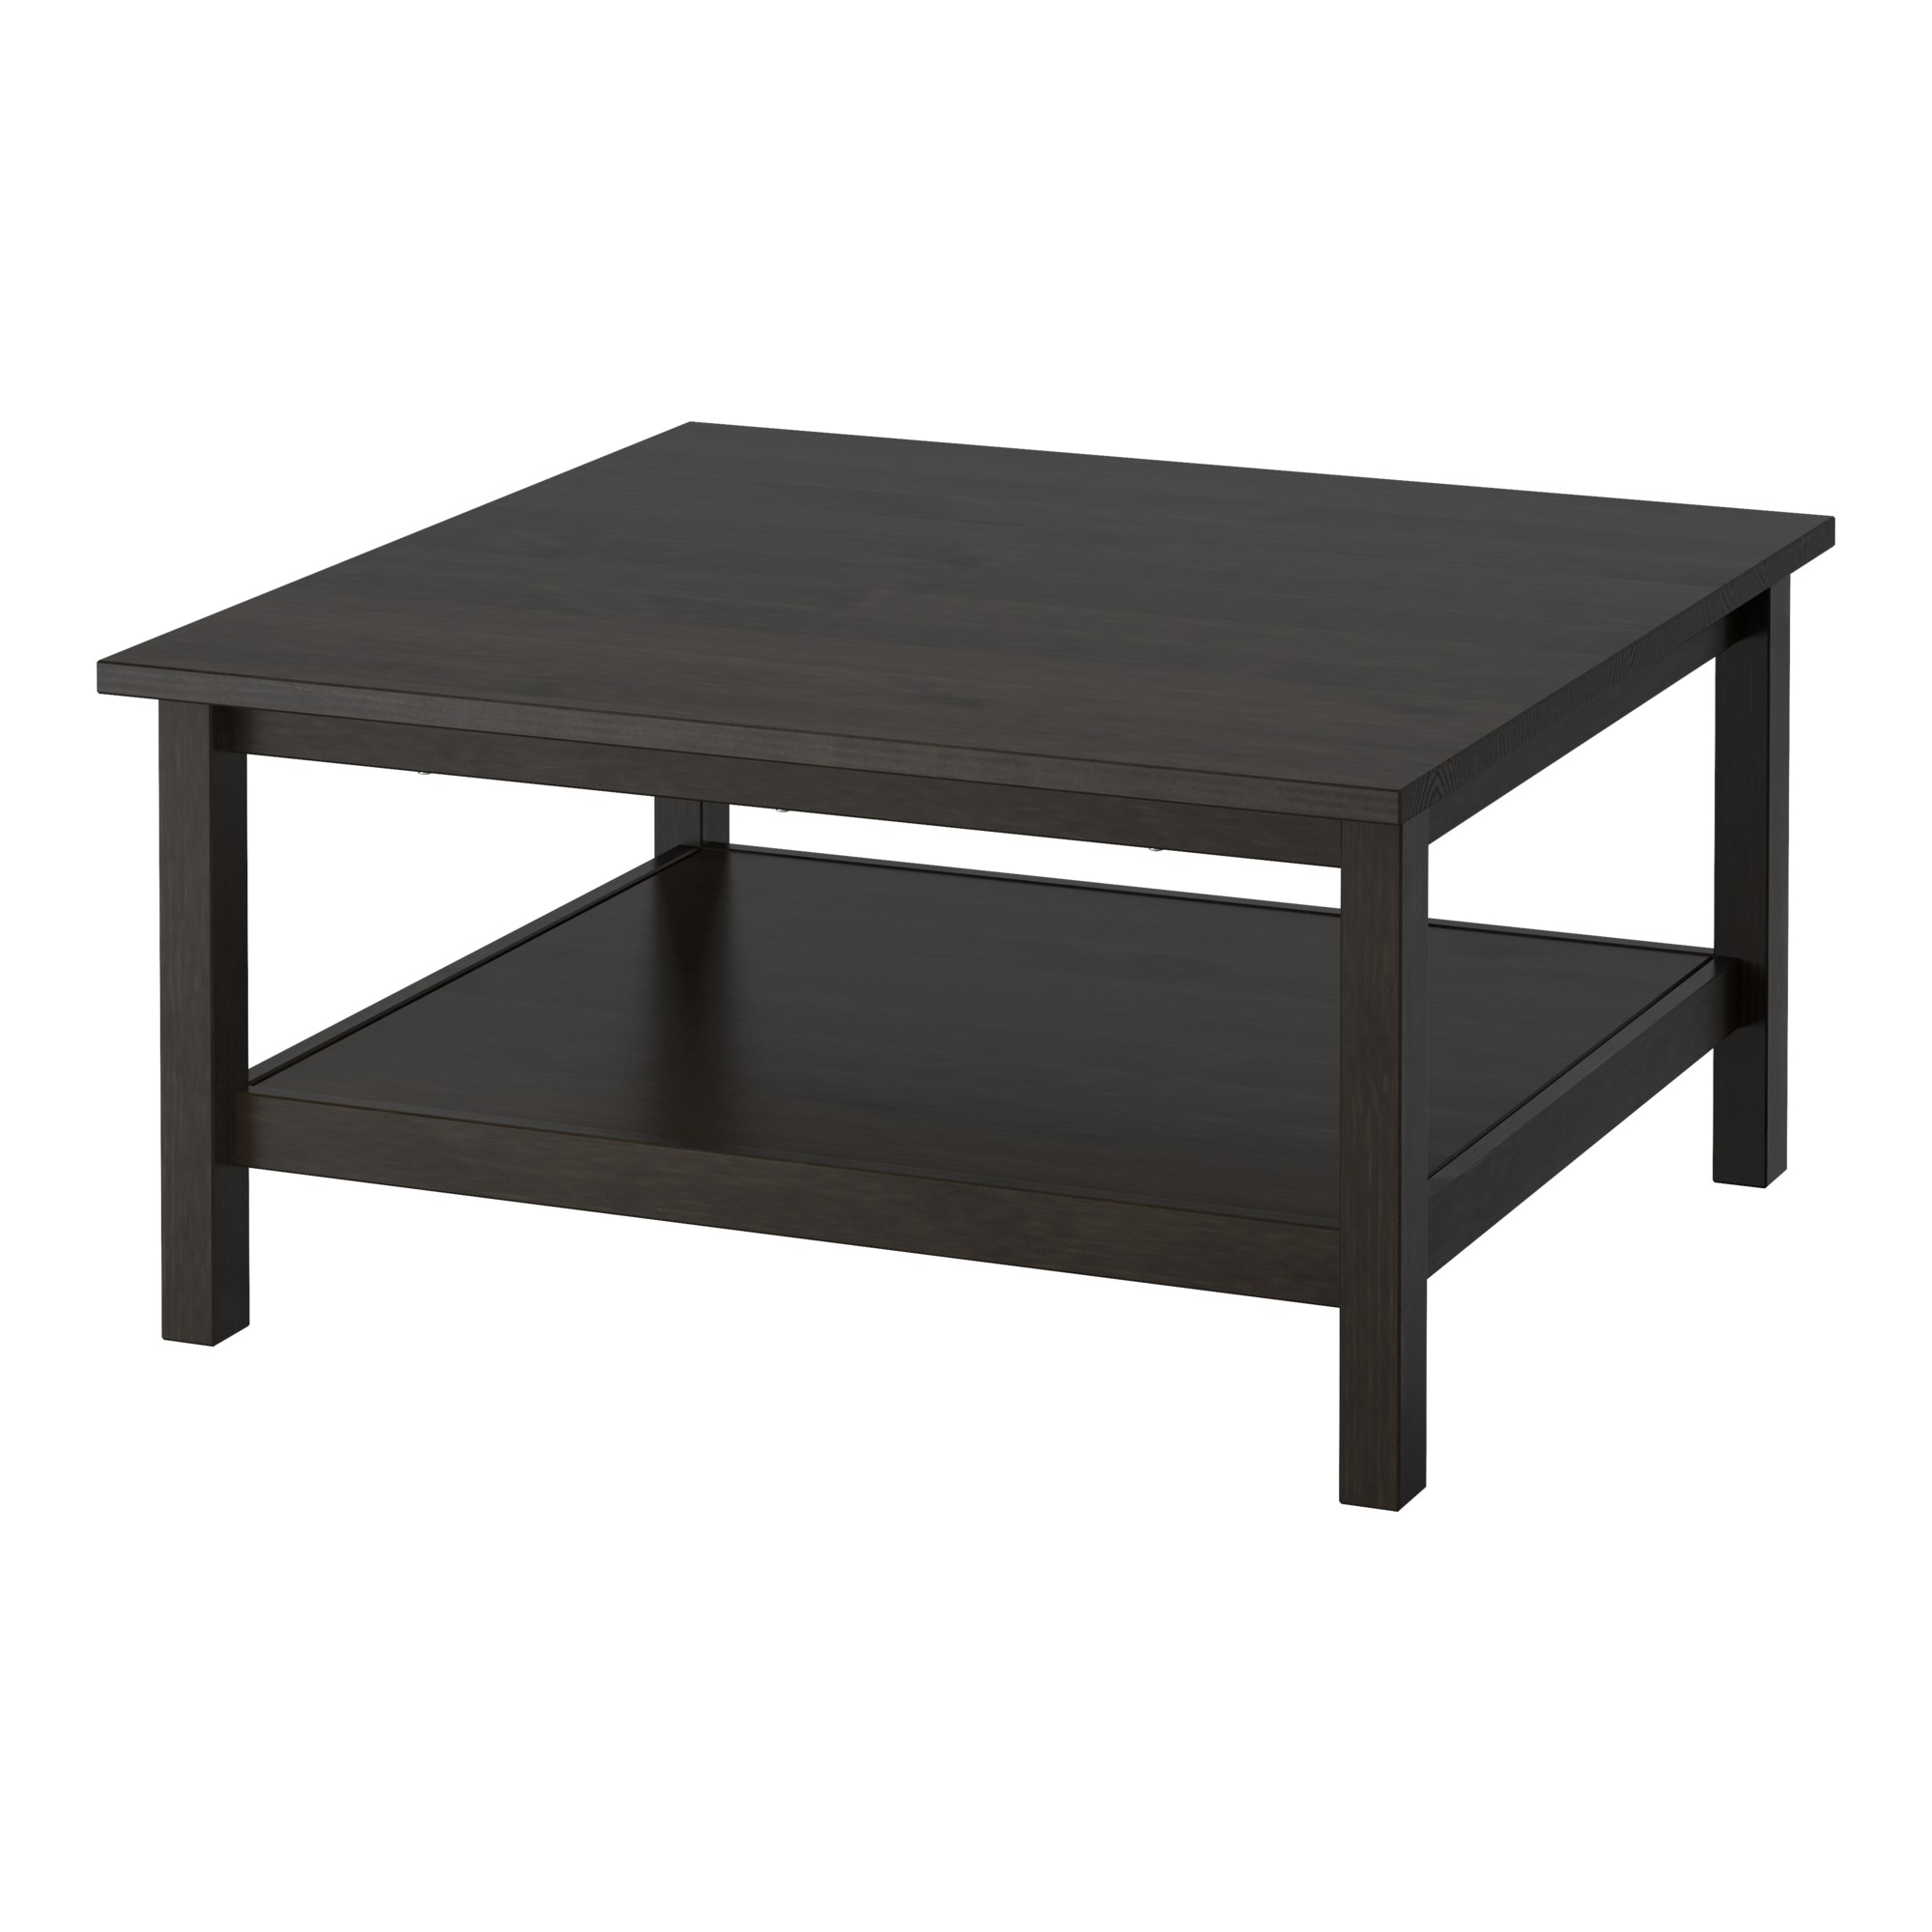 Coffee tables console tables ikea hemnes coffee table black brown length 35 38 width geotapseo Image collections